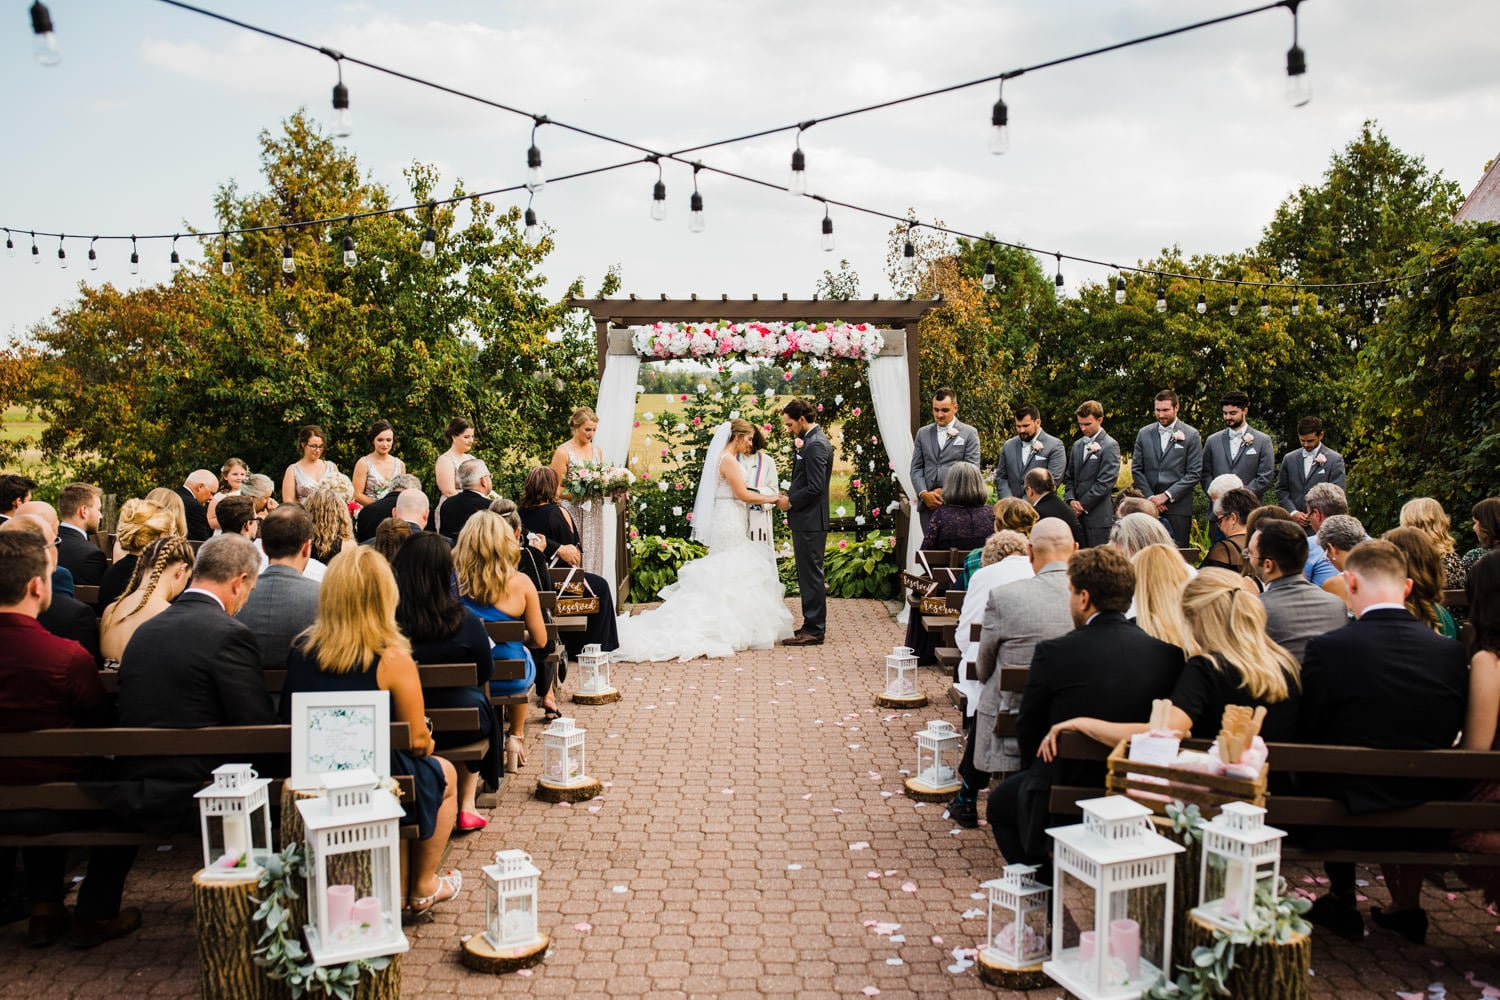 bride and groom bow their heads during wedding ceremony - strathmere summer wedding